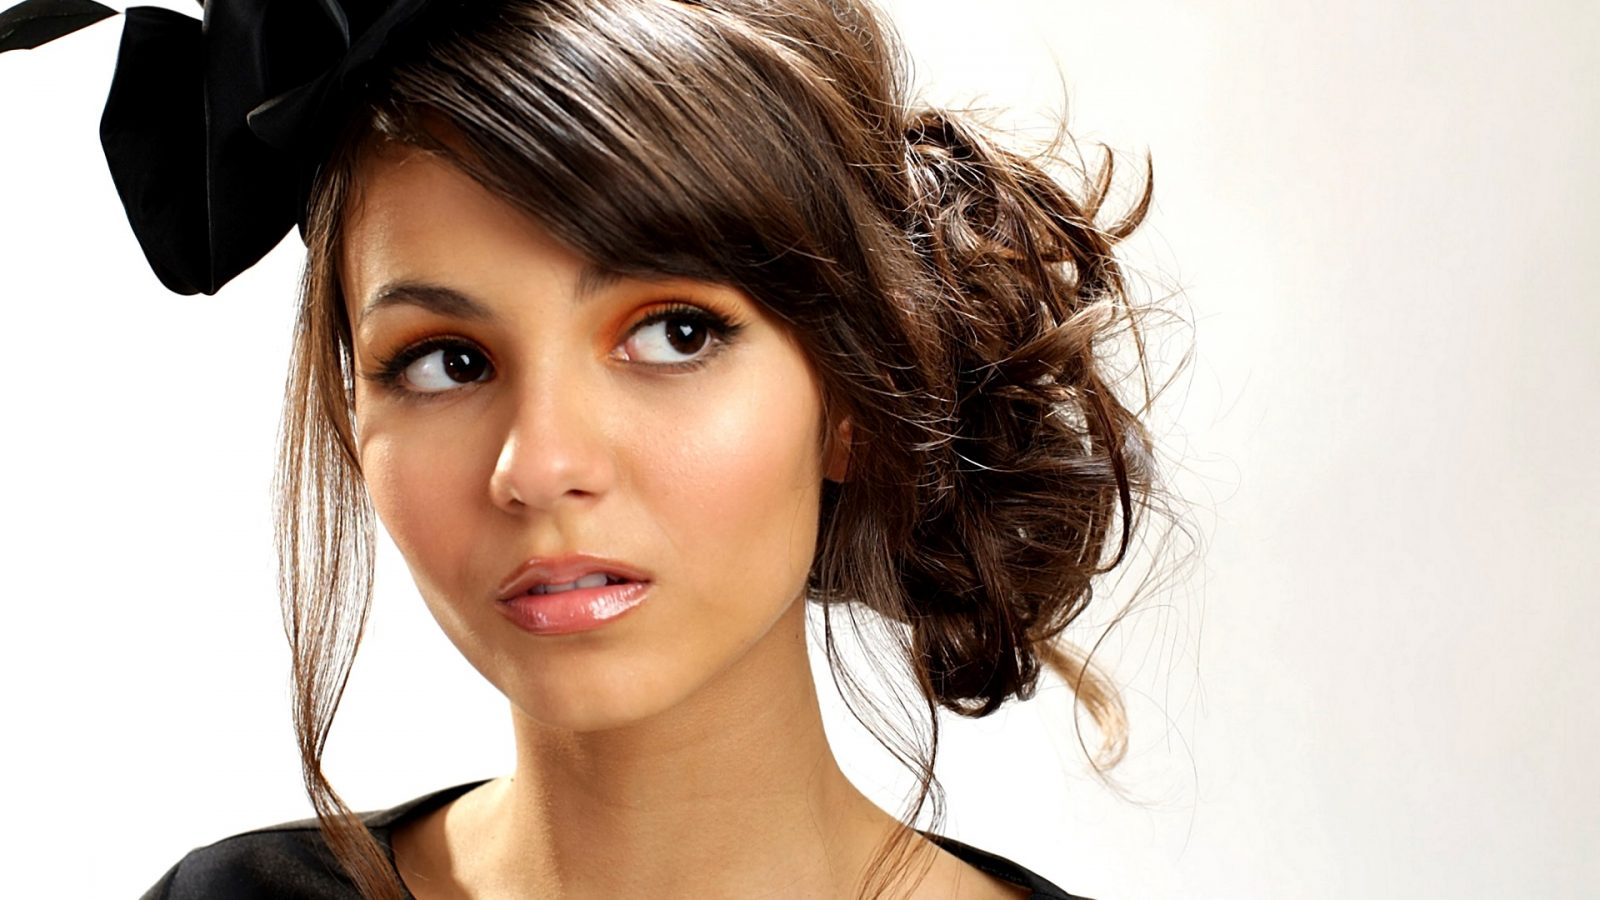 Victoria Justice Hair Style Wallpaper Hd Wallpaper Background